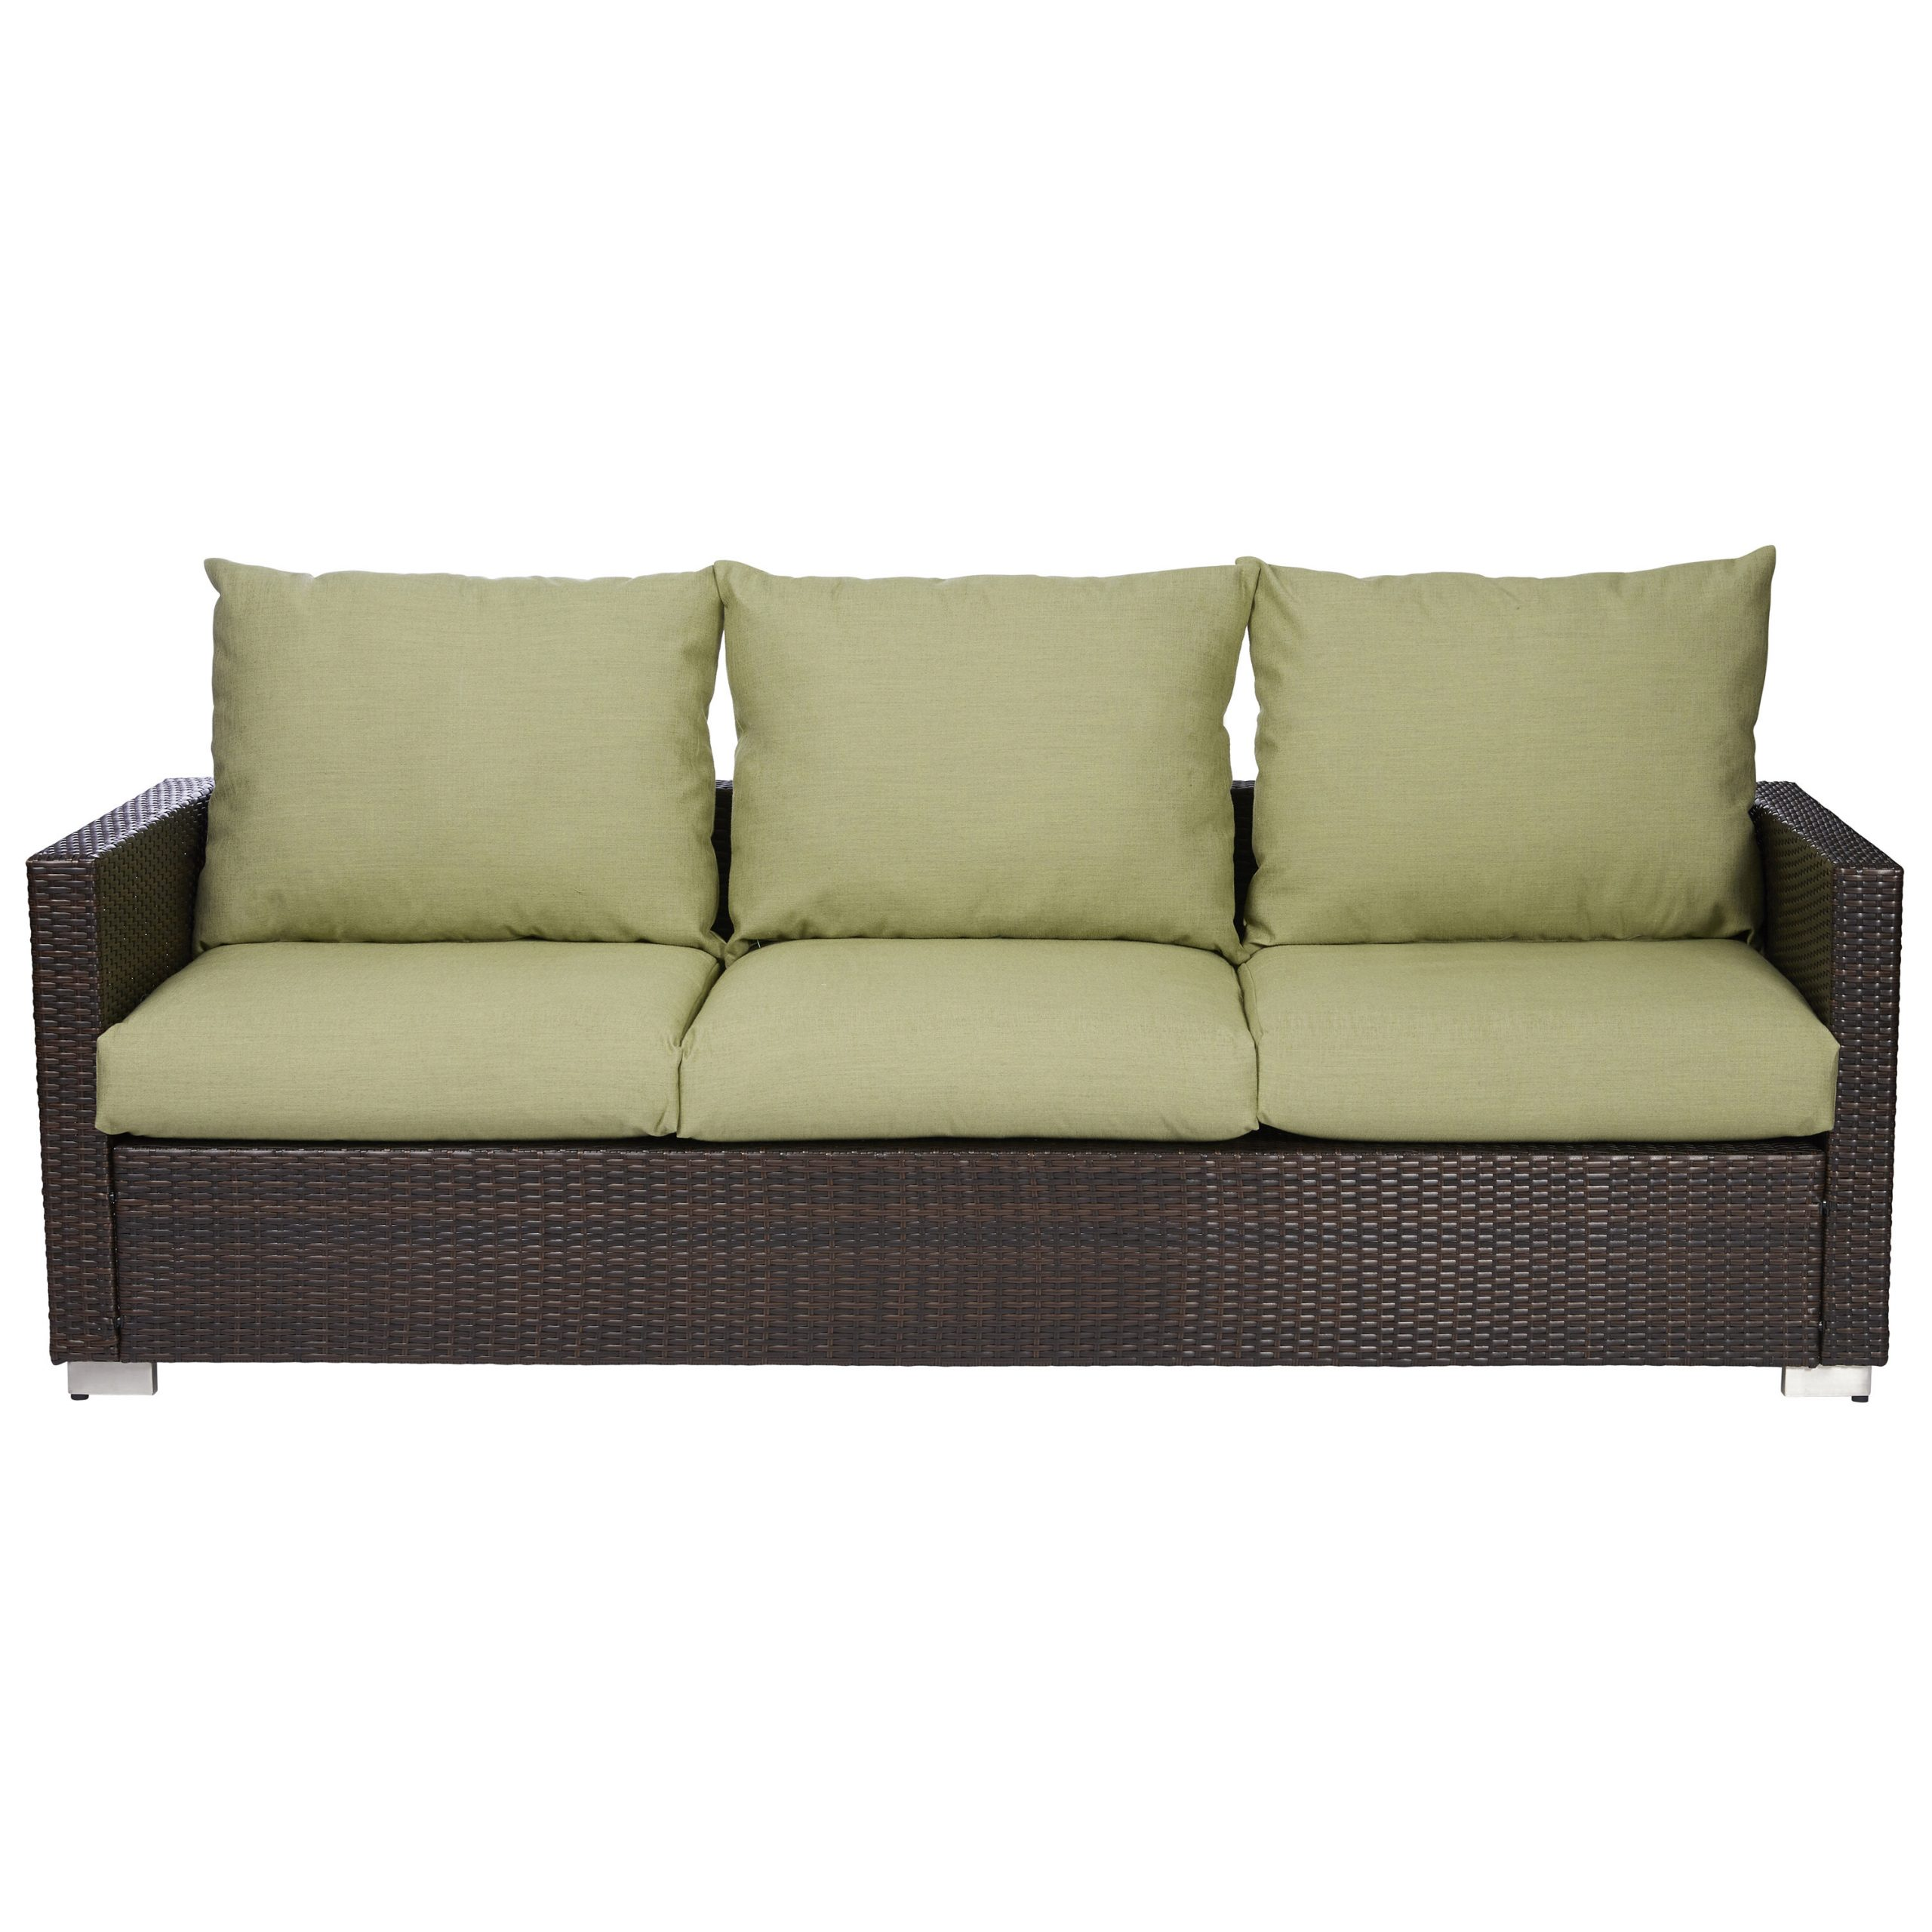 Mcmanis Patio Sofa With Cushion Throughout Well Liked Zeman Ultra Comfortable Upholstered Anodized Aluminum Loveseats With Cushion (Gallery 6 of 25)